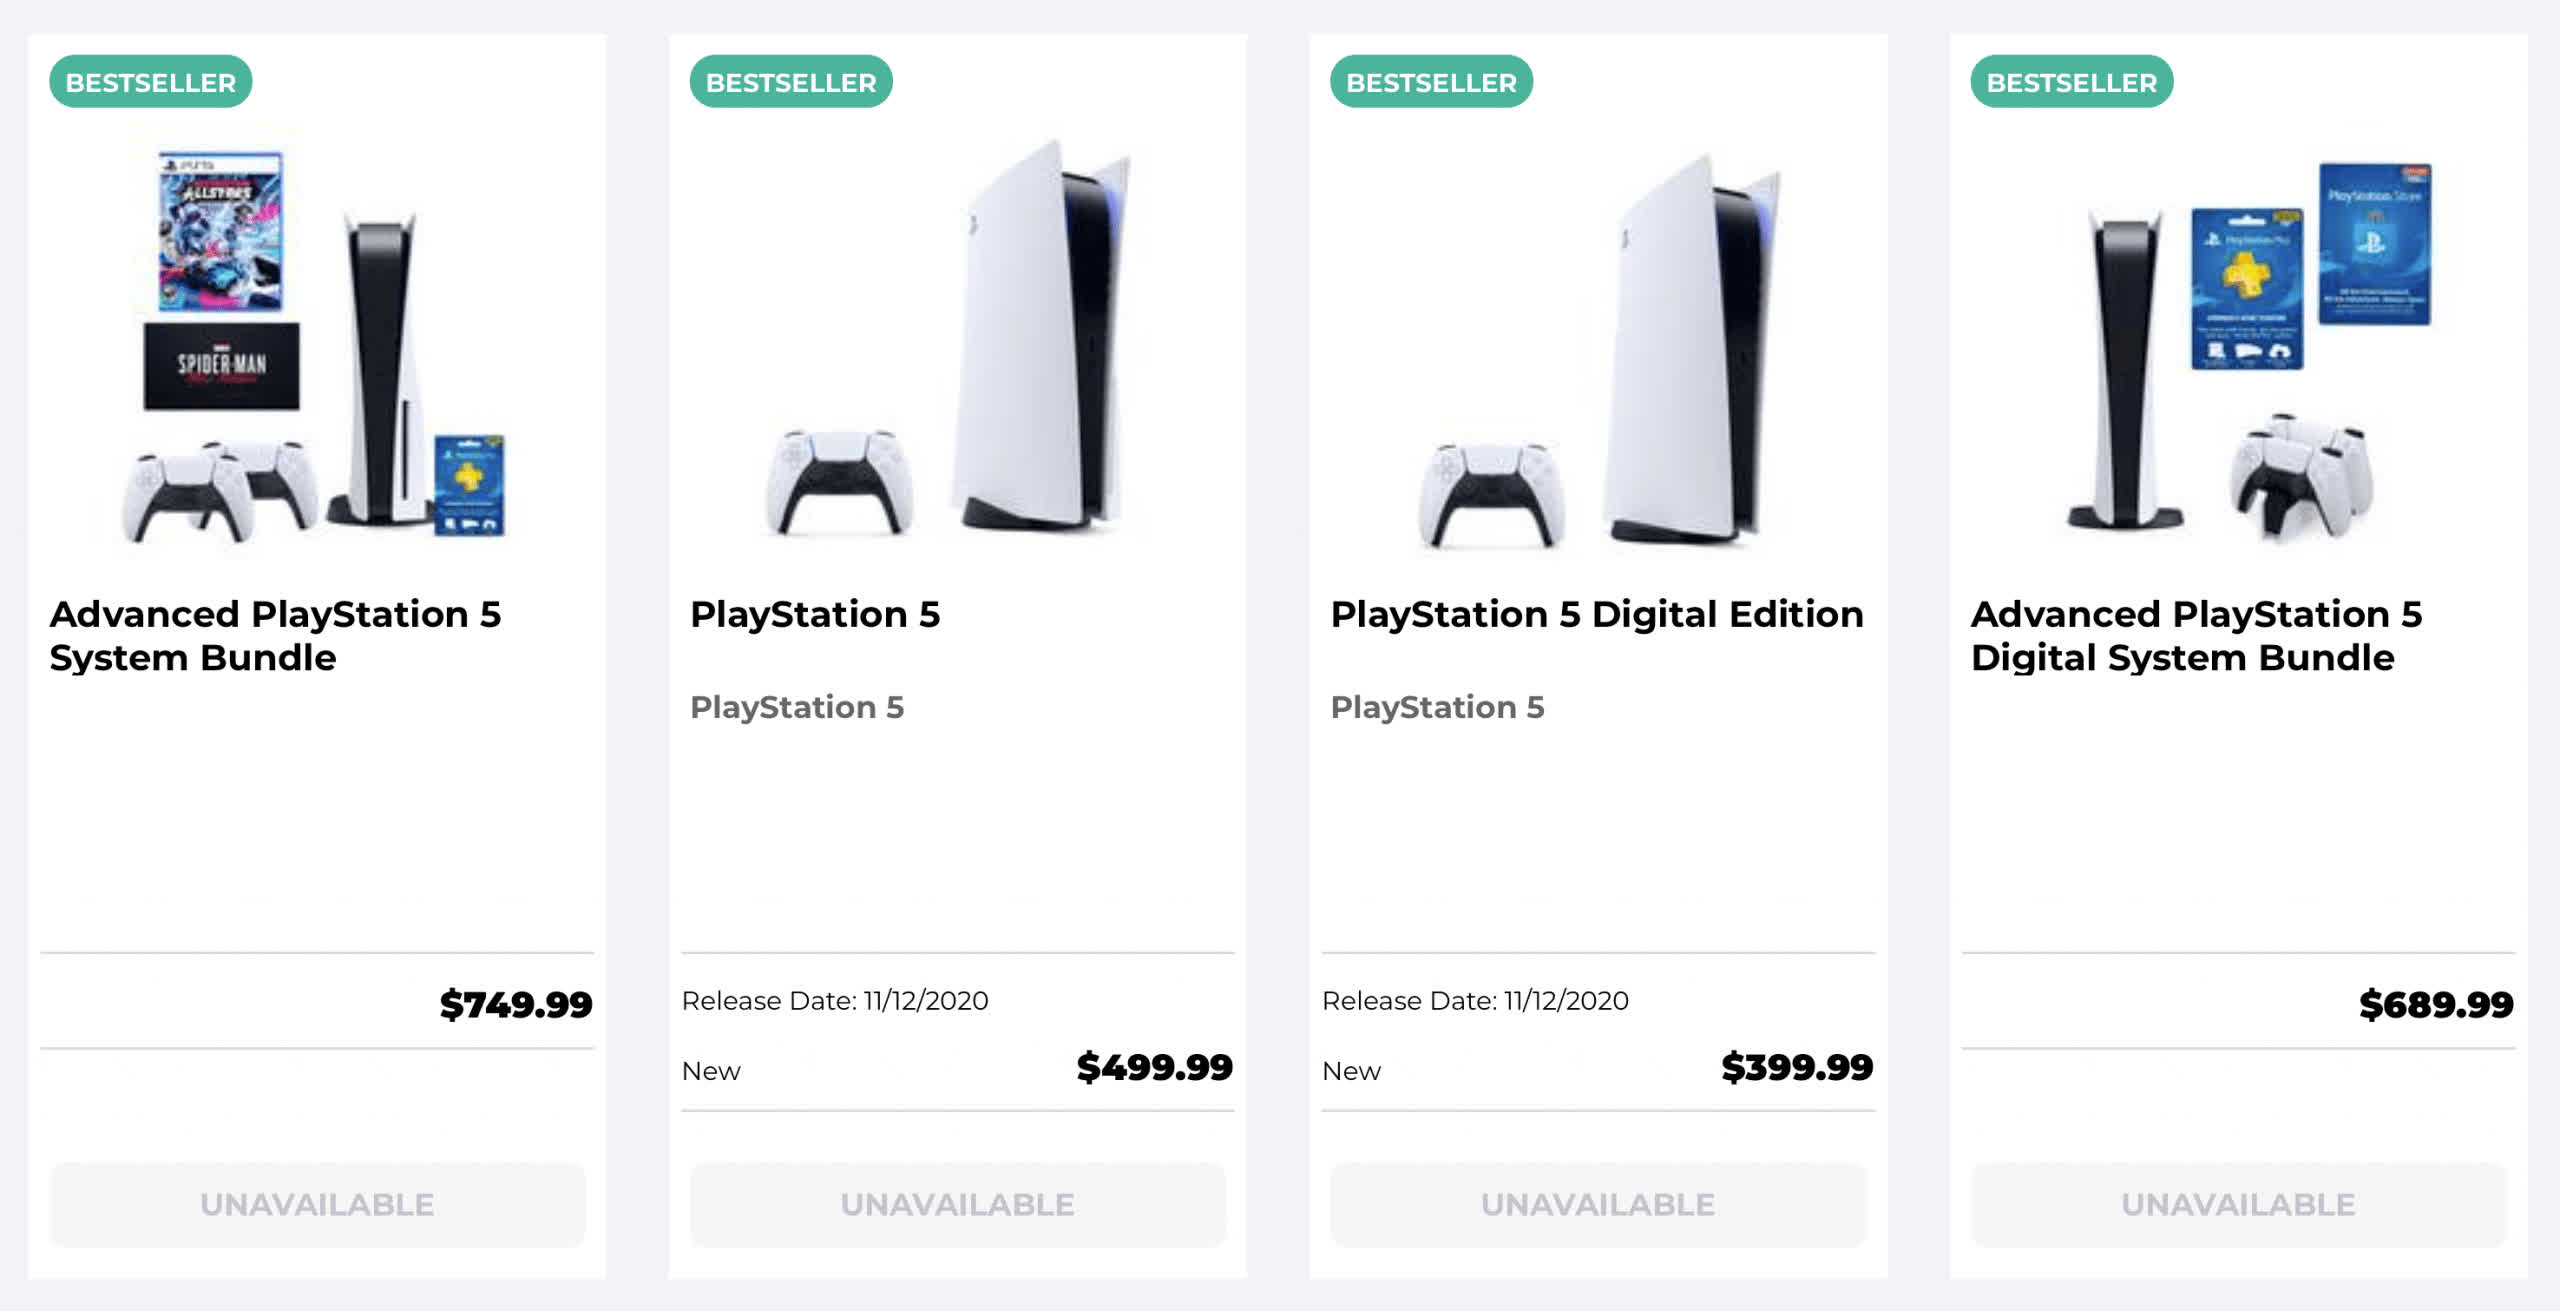 PlayStation 5 pre-orders sell out in less than 24 hours